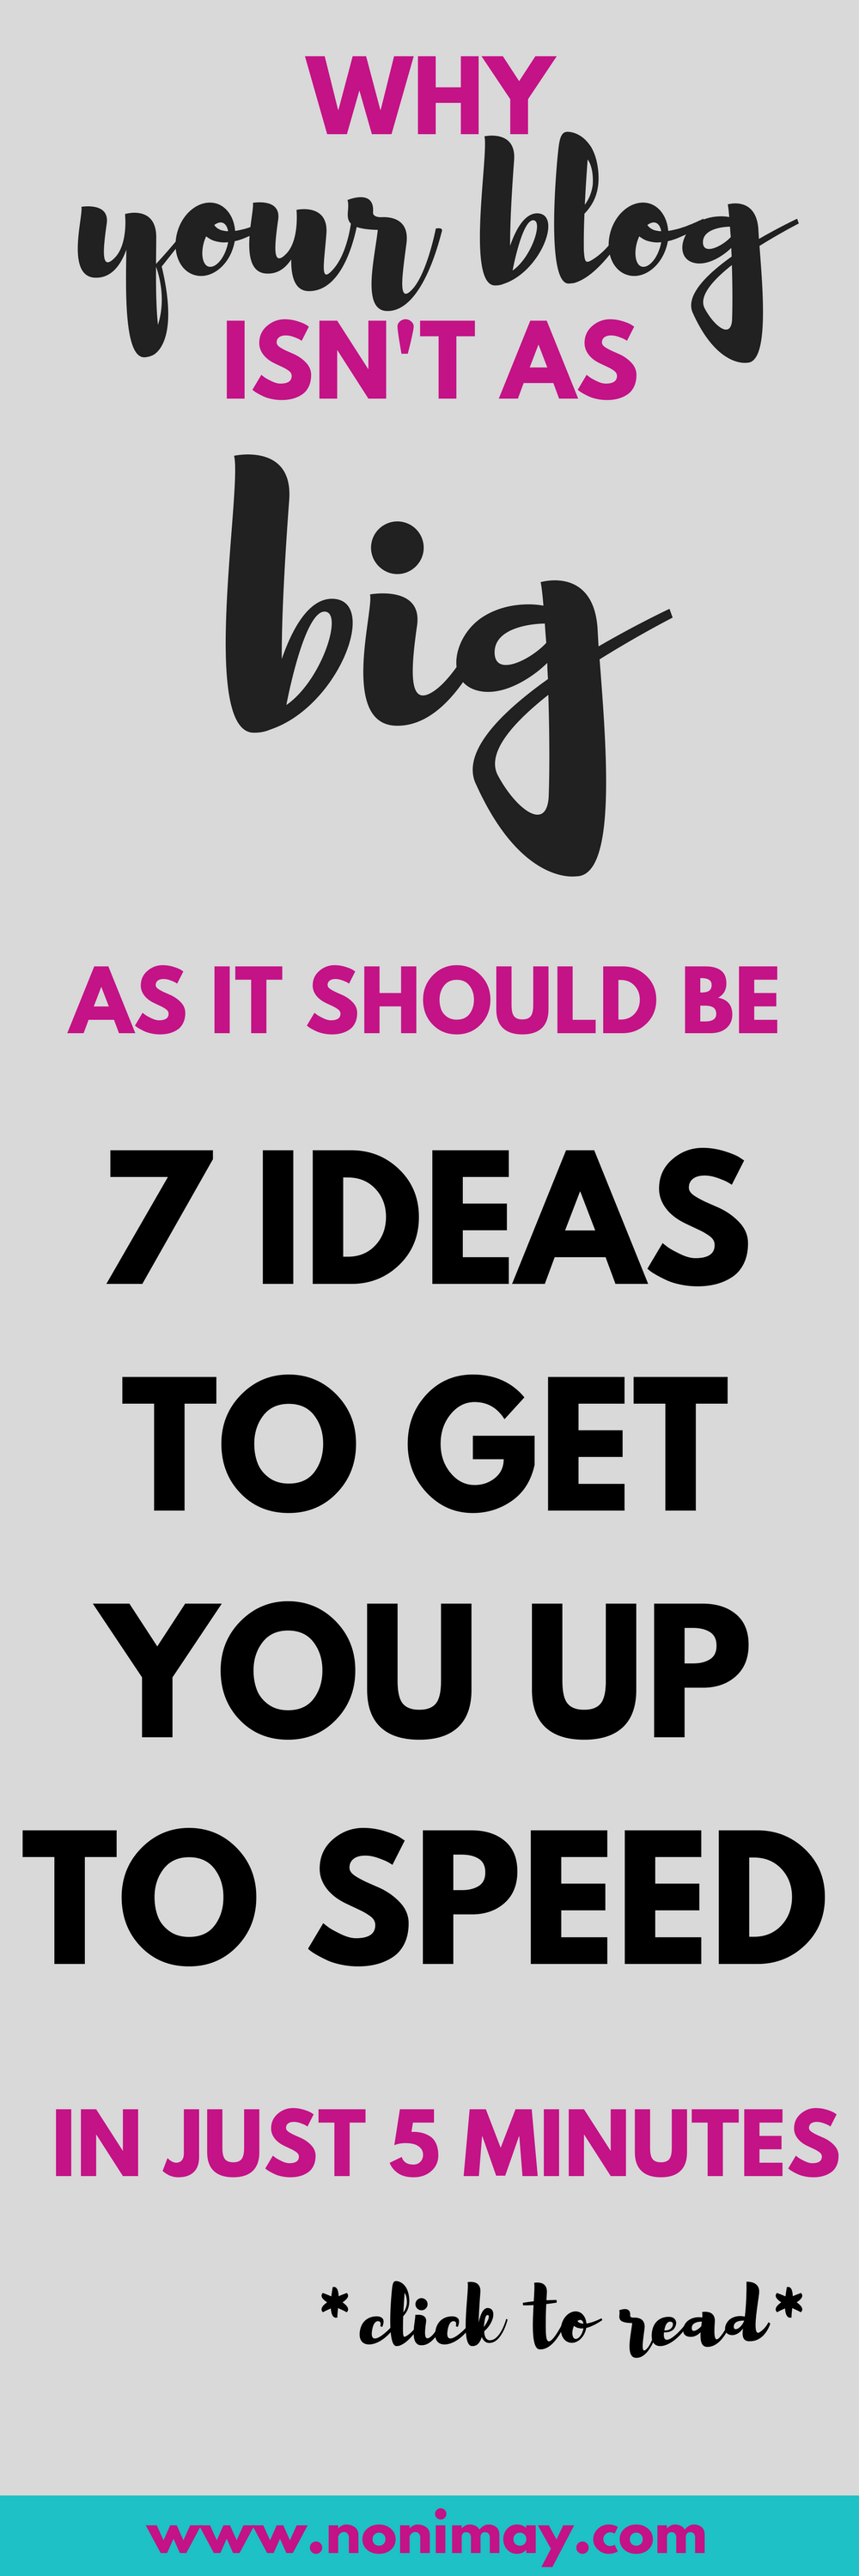 Why your blog isn't as big as it should be and 7 ideas to get you up to speed in just 5 minutes